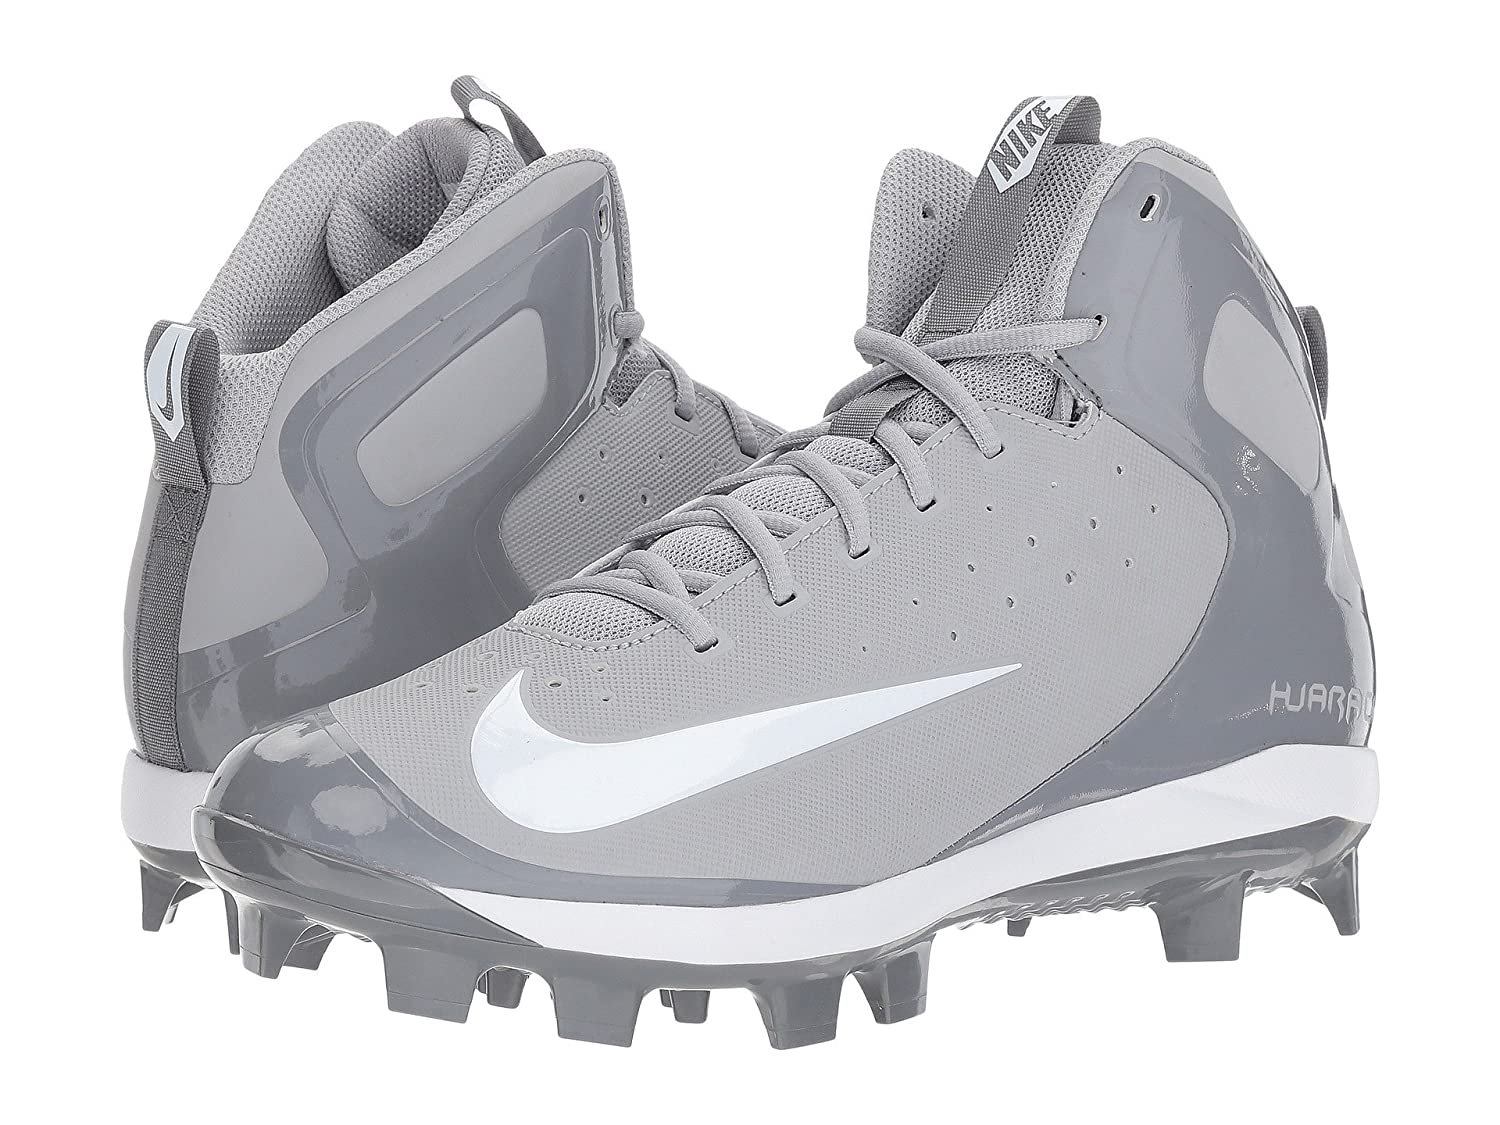 (ナイキ) NIKE メンズ野球ベースボールシューズ靴 Alpha Huarache Pro Mid MCS Wolf Grey/White/Cool Grey 12.5 (30.5cm) D Medium B078Q1ZZWJ